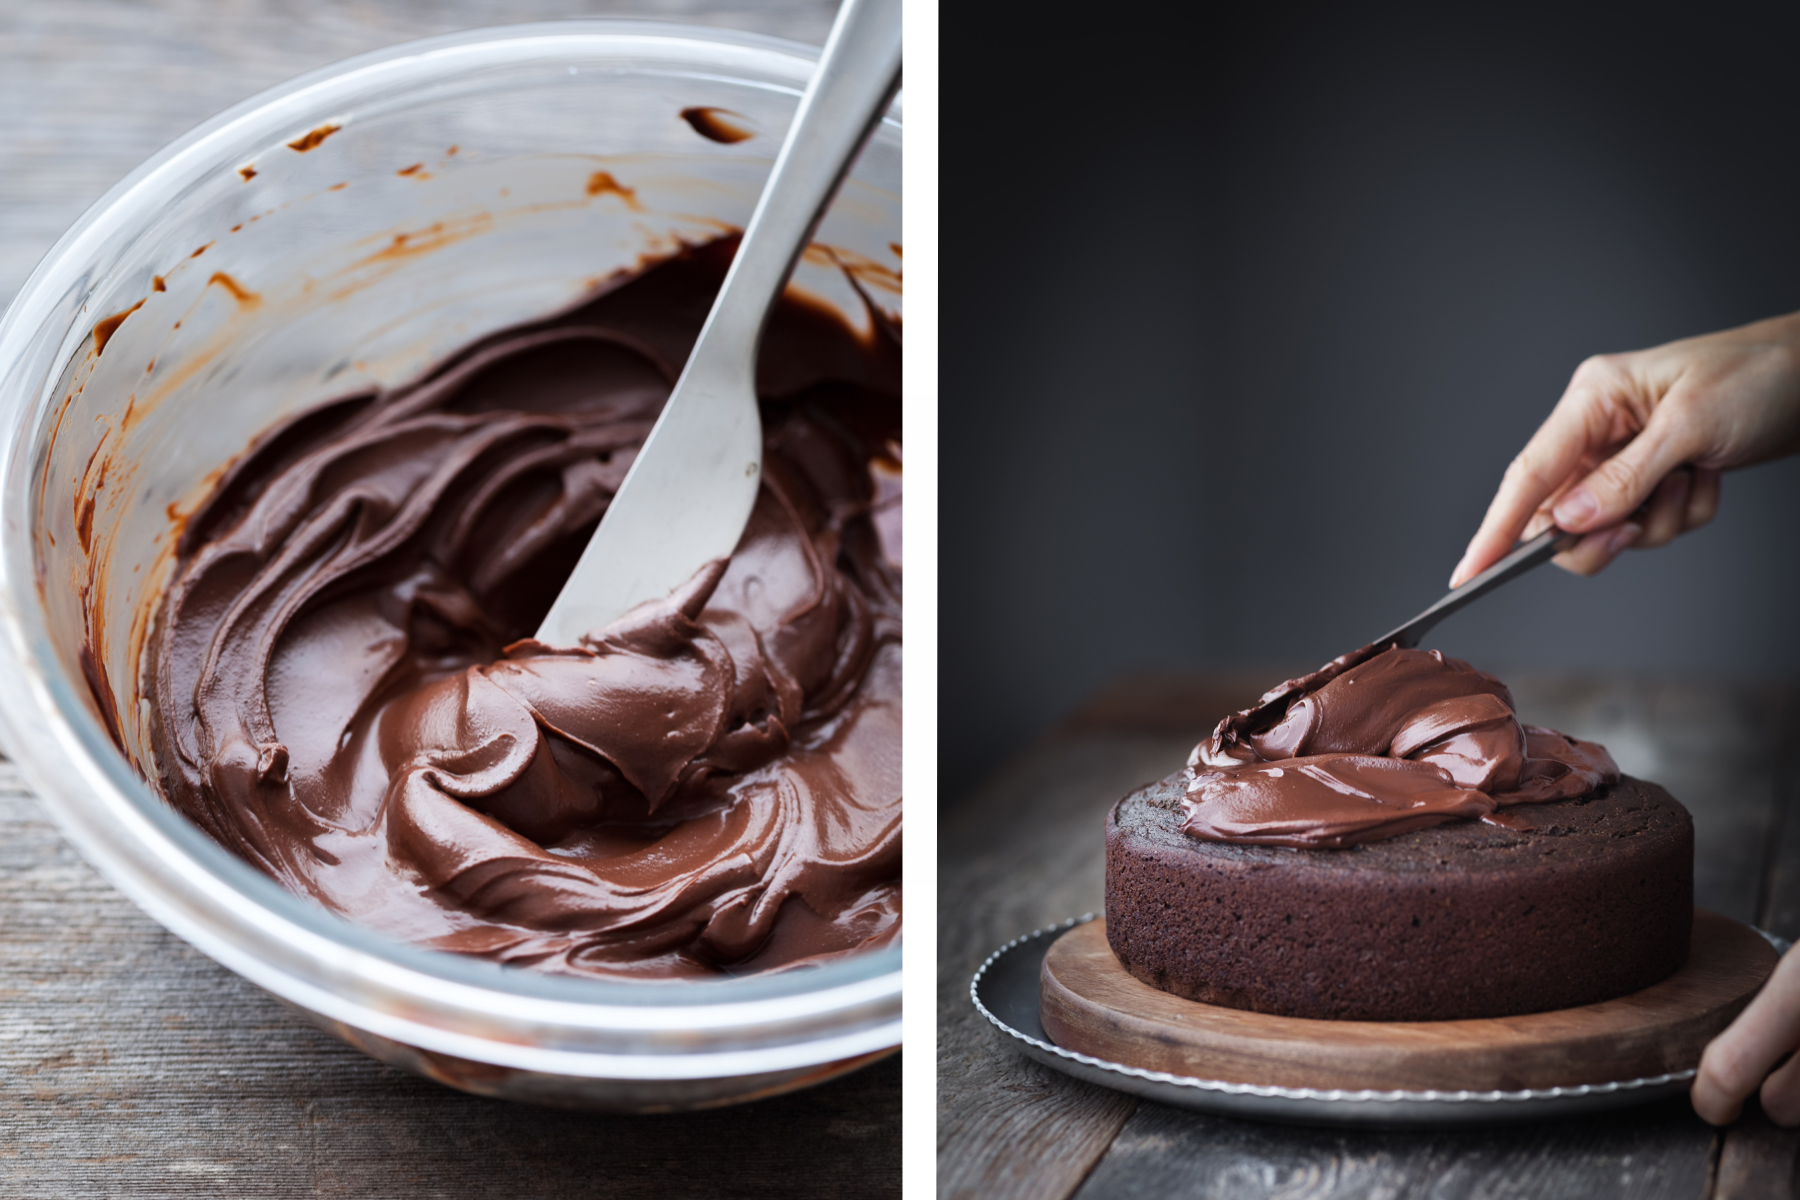 a side by side image of a bowl of chocllate ganache with a spreading knife and a second image of a baker frosting a chocolate cake with ganache.